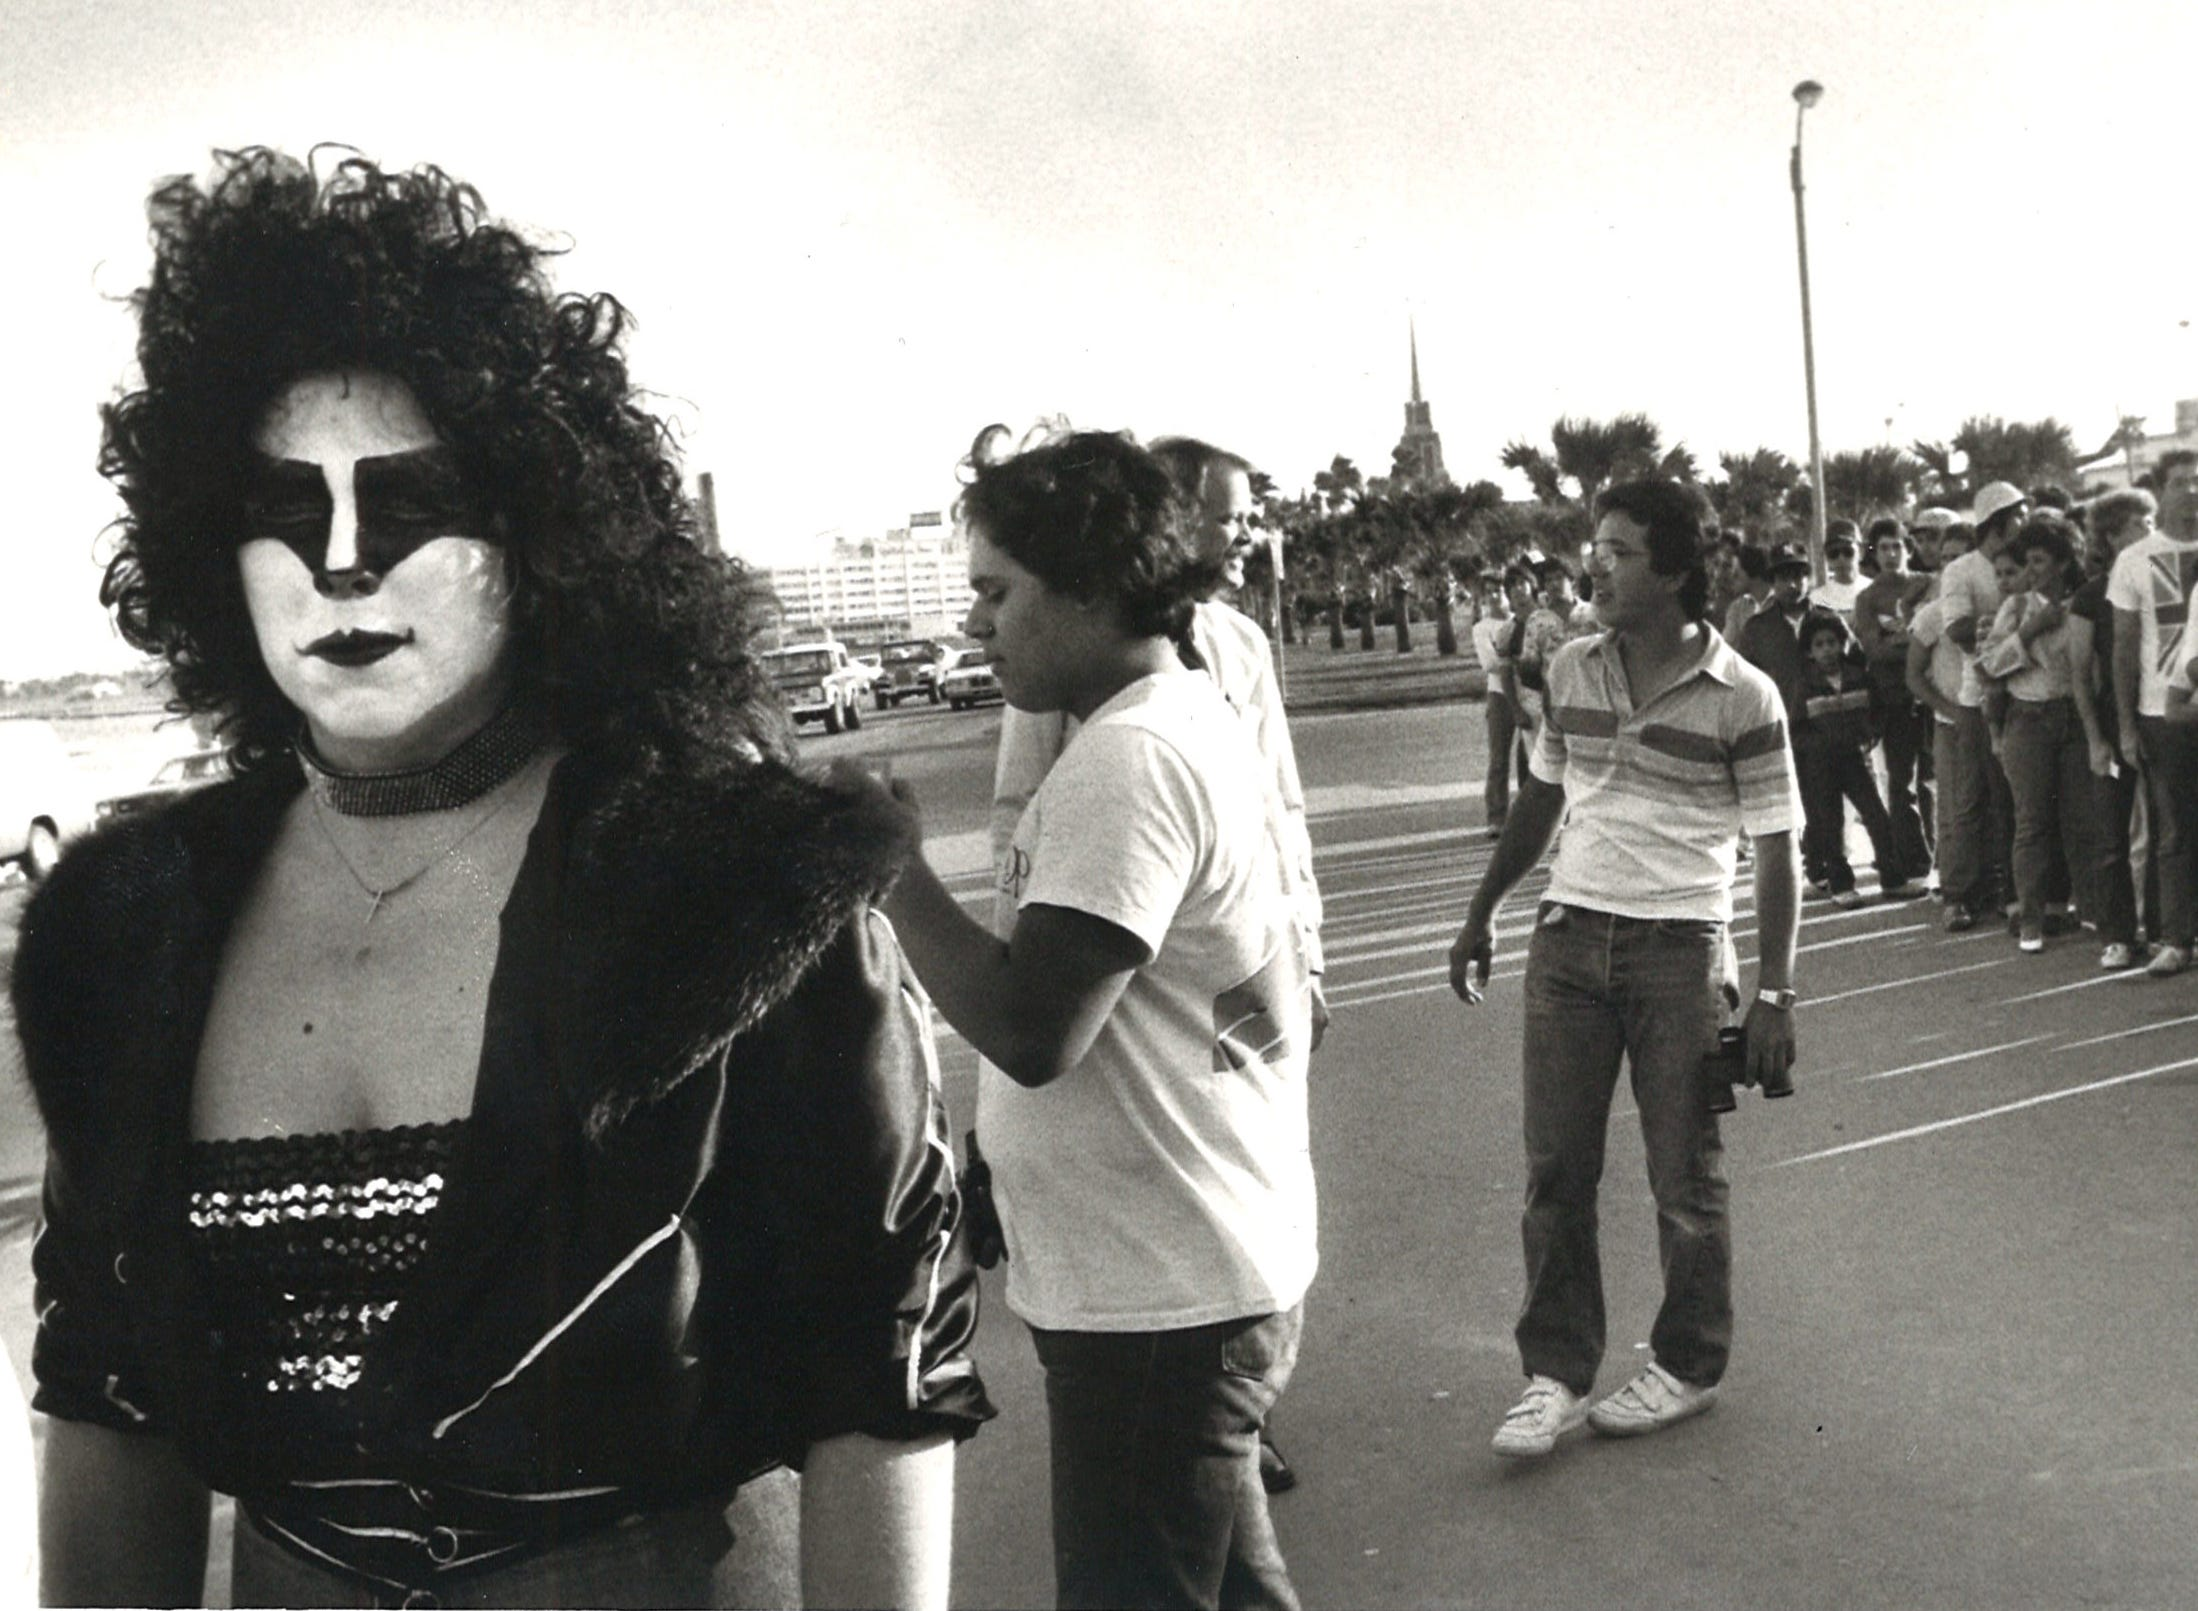 Kiss fans showed up for the March 14, 1983 concert at Memorial Coliseum in Corpus Christi dressed to impress.